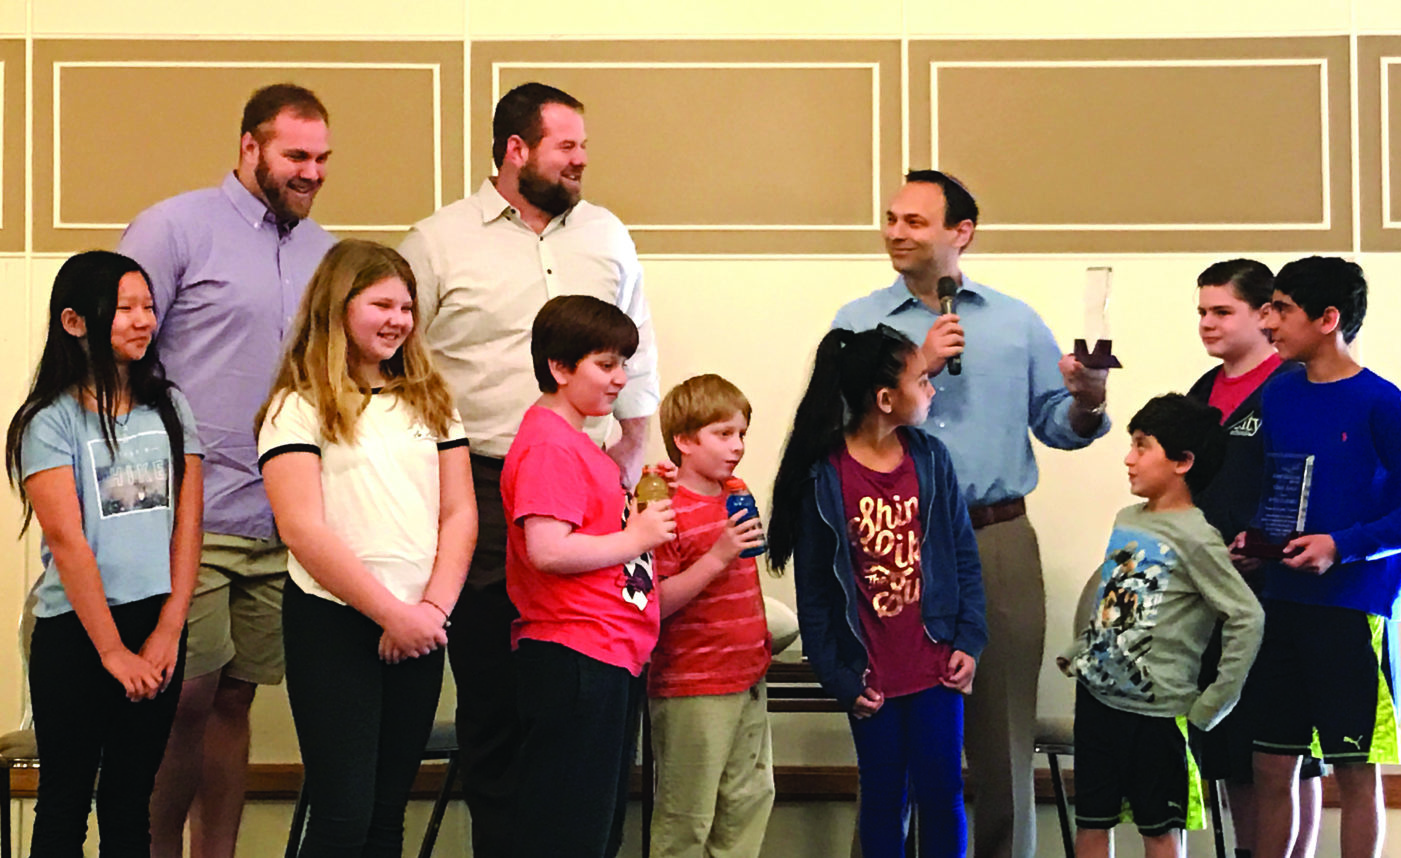 Mitchell and Geoff Schwartz, along with Rabbi Nolan Lebovitz, participate in a recent program at Adat Shalom. The Schwartzes attended religious school and became b'nai mitzvah there. Photo courtesy of Adat Shalom